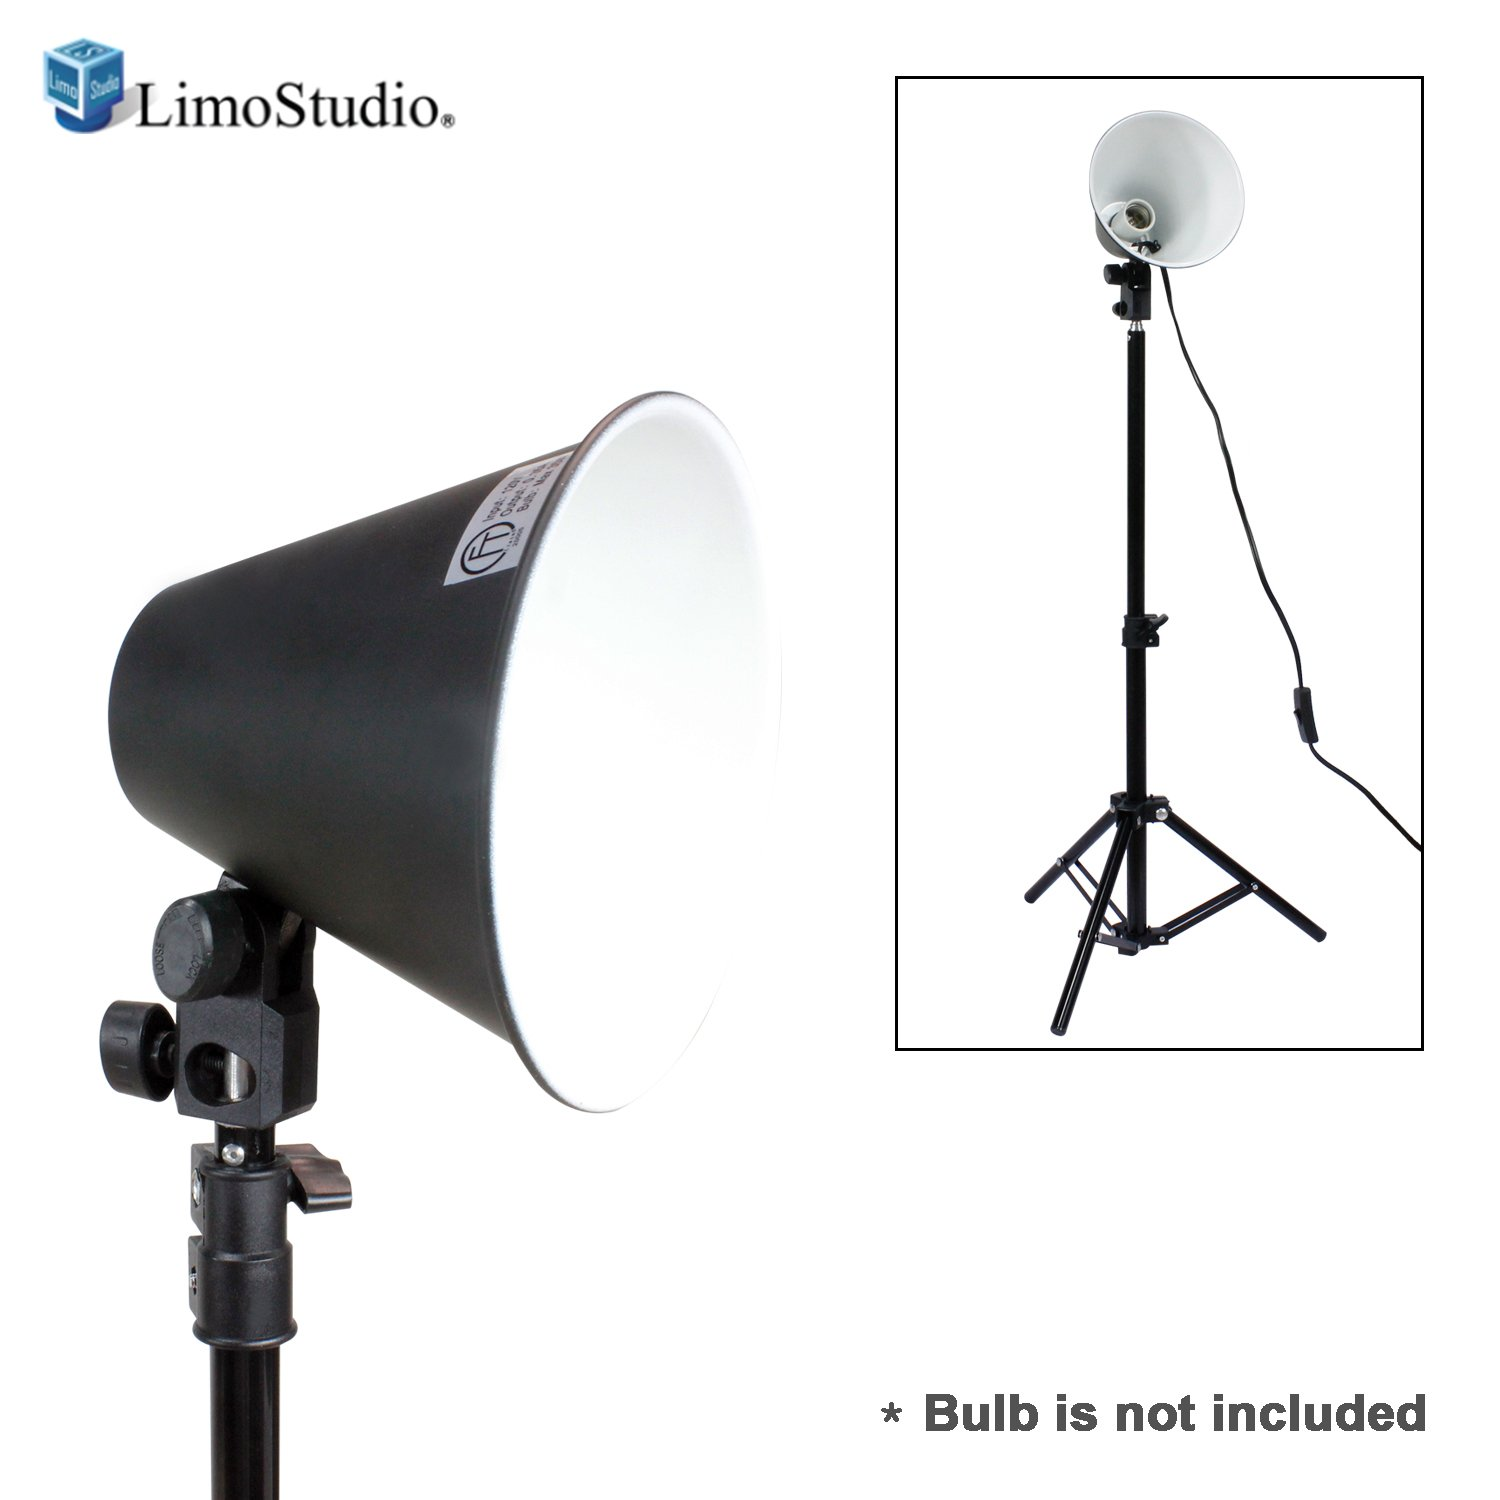 LimoStudio 6.5 Inch Diameter Photography Table Top Continuous Light Head with 28'' Mini Aluminum Photography Back Light Stand for Table Top Photo Studio Light (Bulb is NOT included), PR23_AM1 by LimoStudio